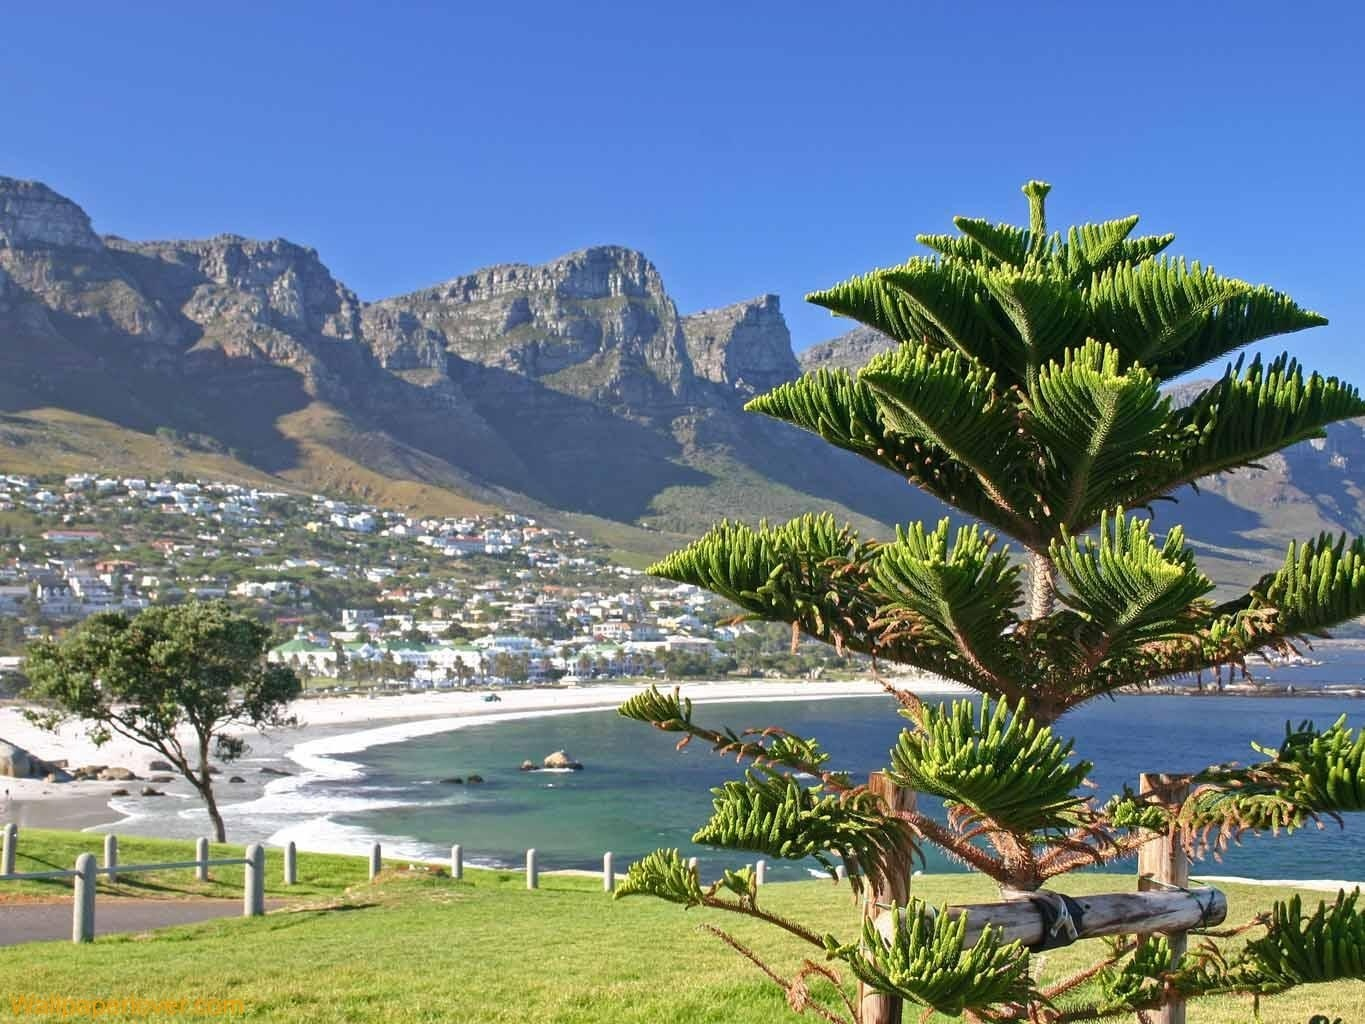 Africa Cape Town Px Wallpapers Autotrader South Africa Photo Shared By 1365x1024